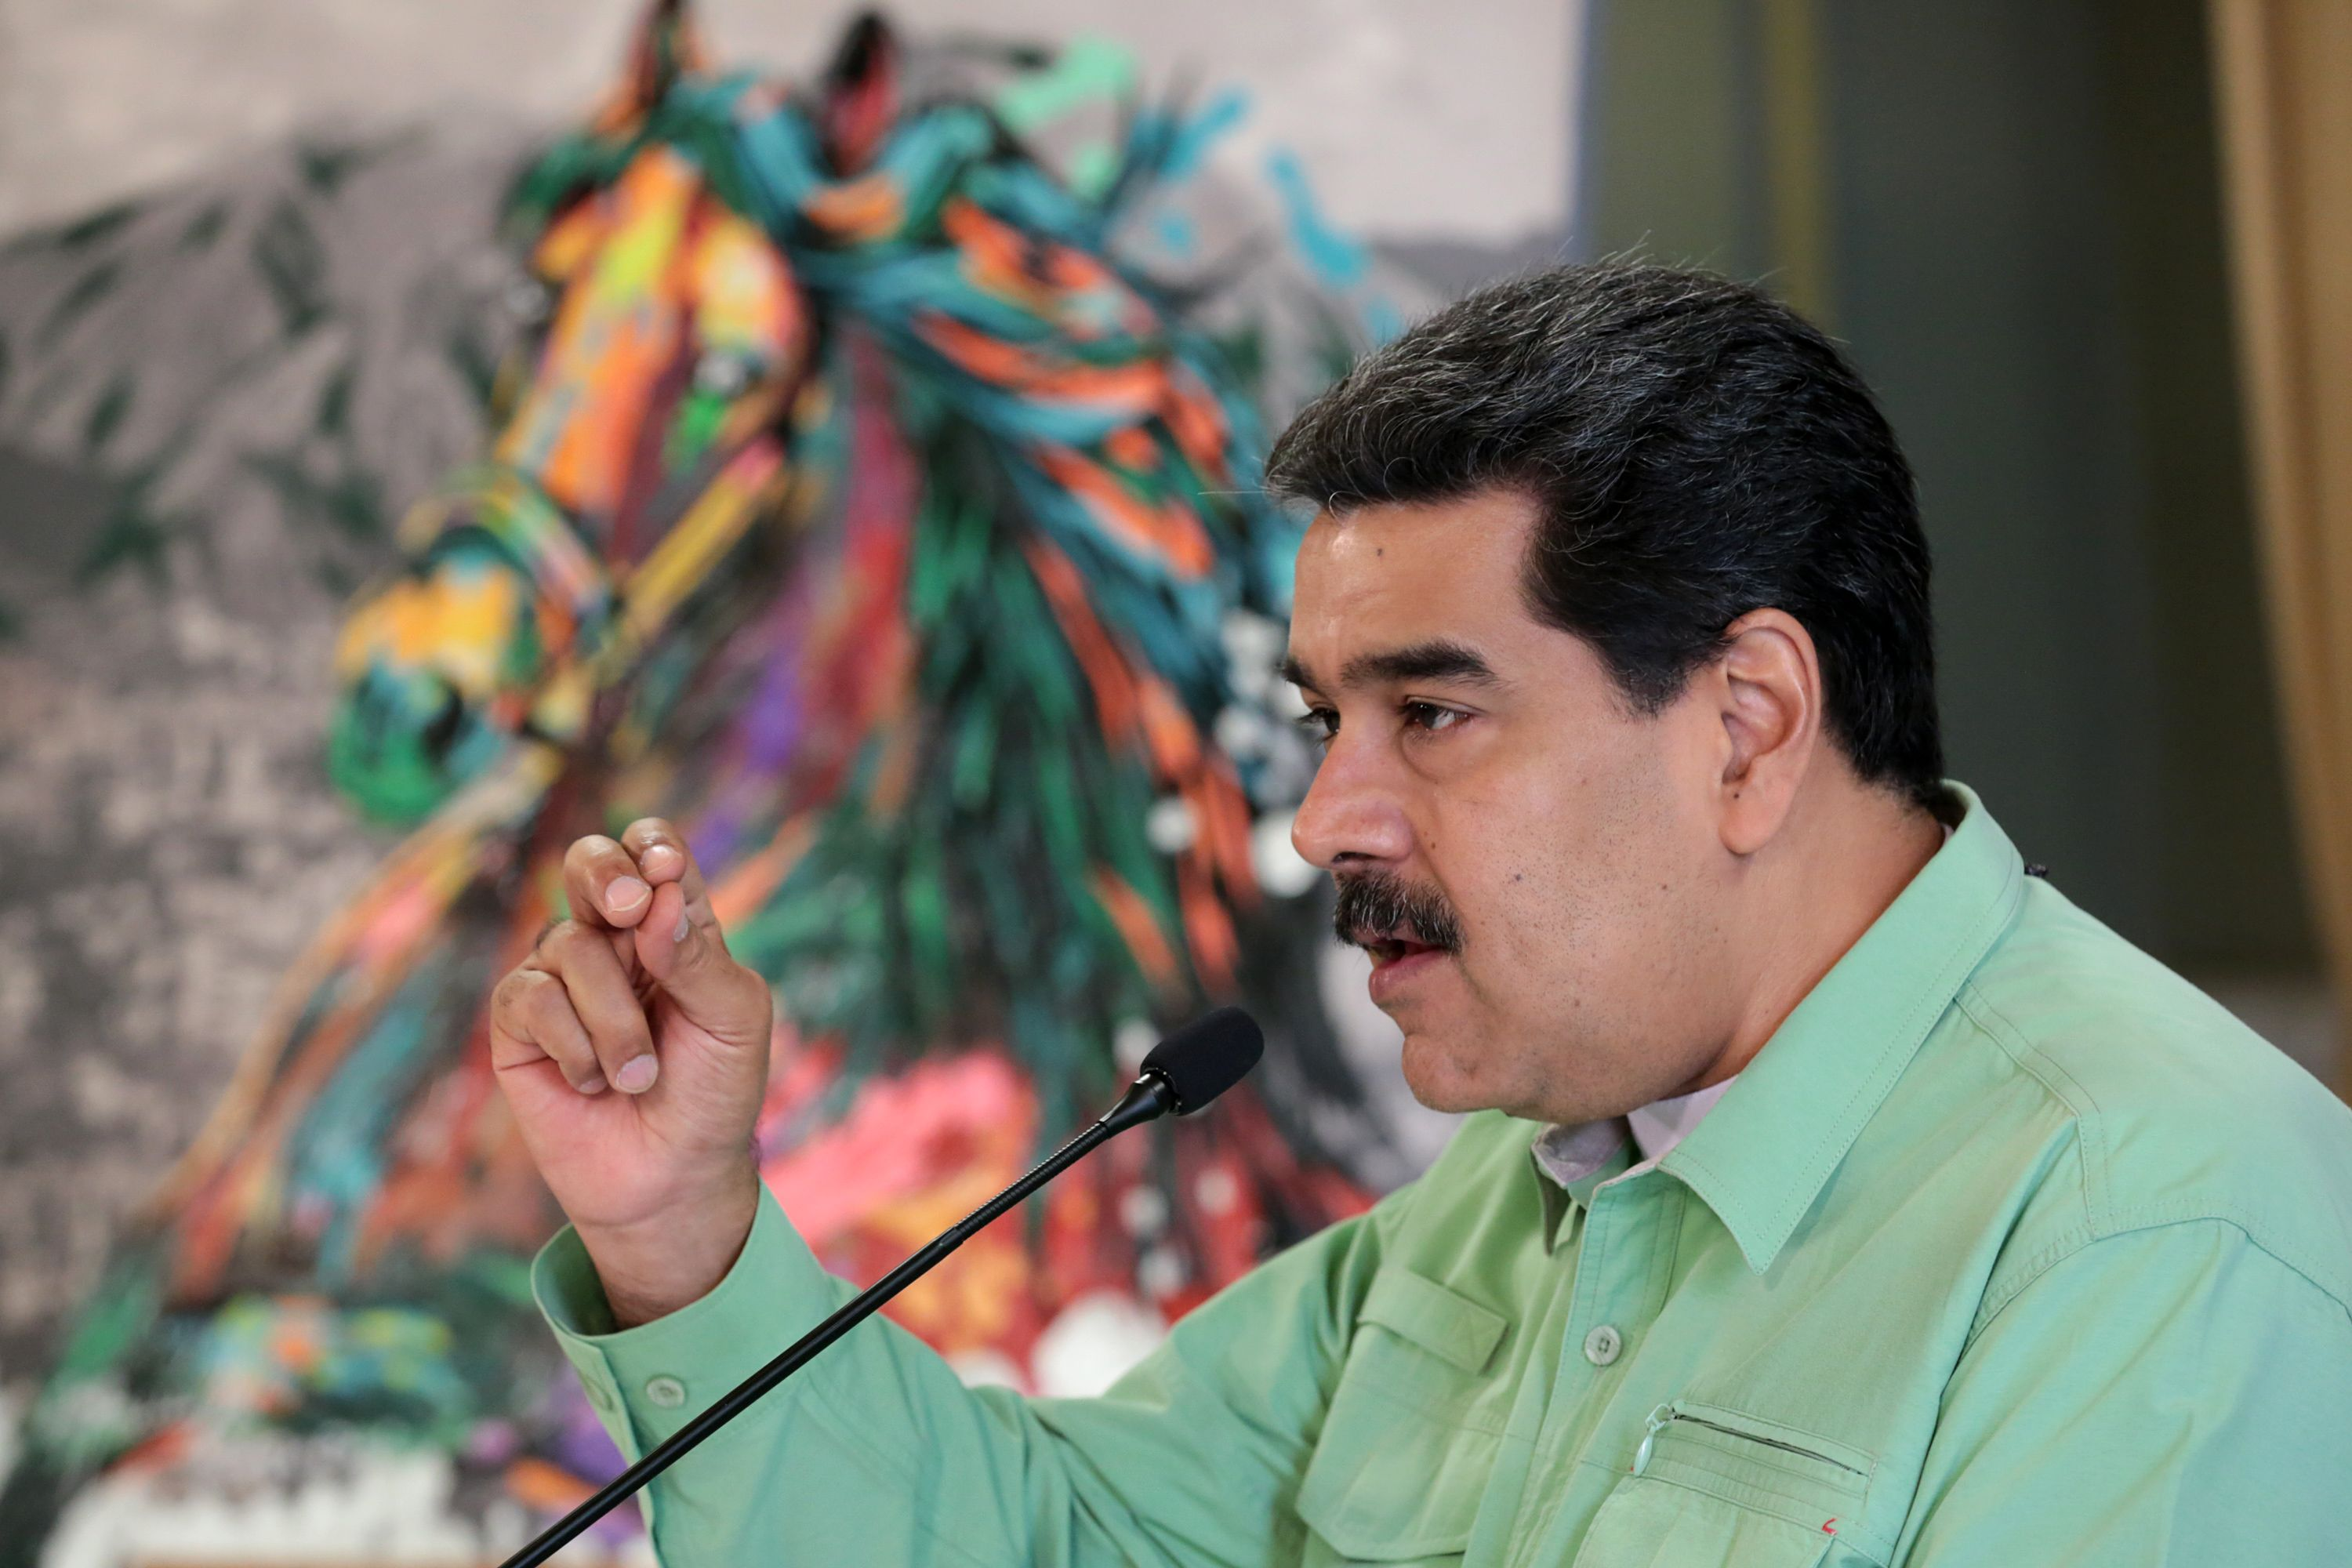 """This handout picture released by the Venezuelan presidency press office shows Venezuelan President Nicolas Maduro during a meeting with doctors in Caracas, Venezuela on February 21, 2019. - President Nicolas Maduro said Venezuela would shut its border with Brazil on Thursday """"until further notice"""" amid a tense standoff with opposition leader Juan Guaido over allowing in humanitarian aid. (Photo by HO / Venezuelan Presidency / AFP) / RESTRICTED TO EDITORIAL USE-MANDATORY CREDIT """"AFP PHOTO/VENEZUELAN PRESIDENCY/HO"""" NO MARKETING NO ADVERTISING CAMPAIGNS-DISTRIBUTED AS A SERVICE TO CLIENTS-GETTY OUT"""